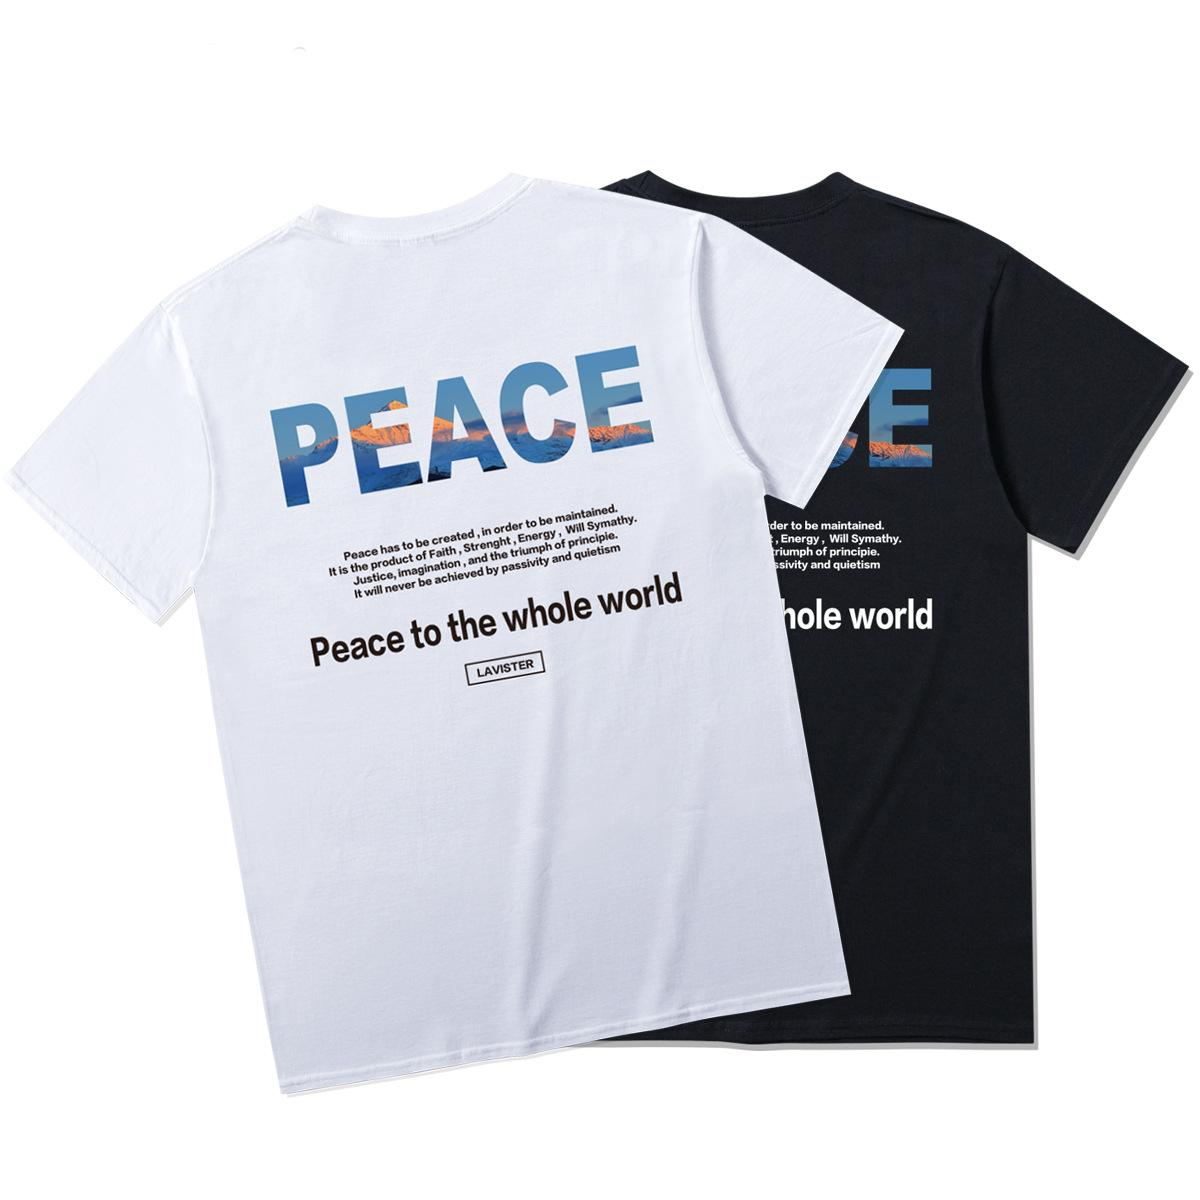 Casual Men's T-shirt 20SS Summer Peace to the whole world Printed Peace-loving judicial fairness theme Fashion personality loose T-shirt